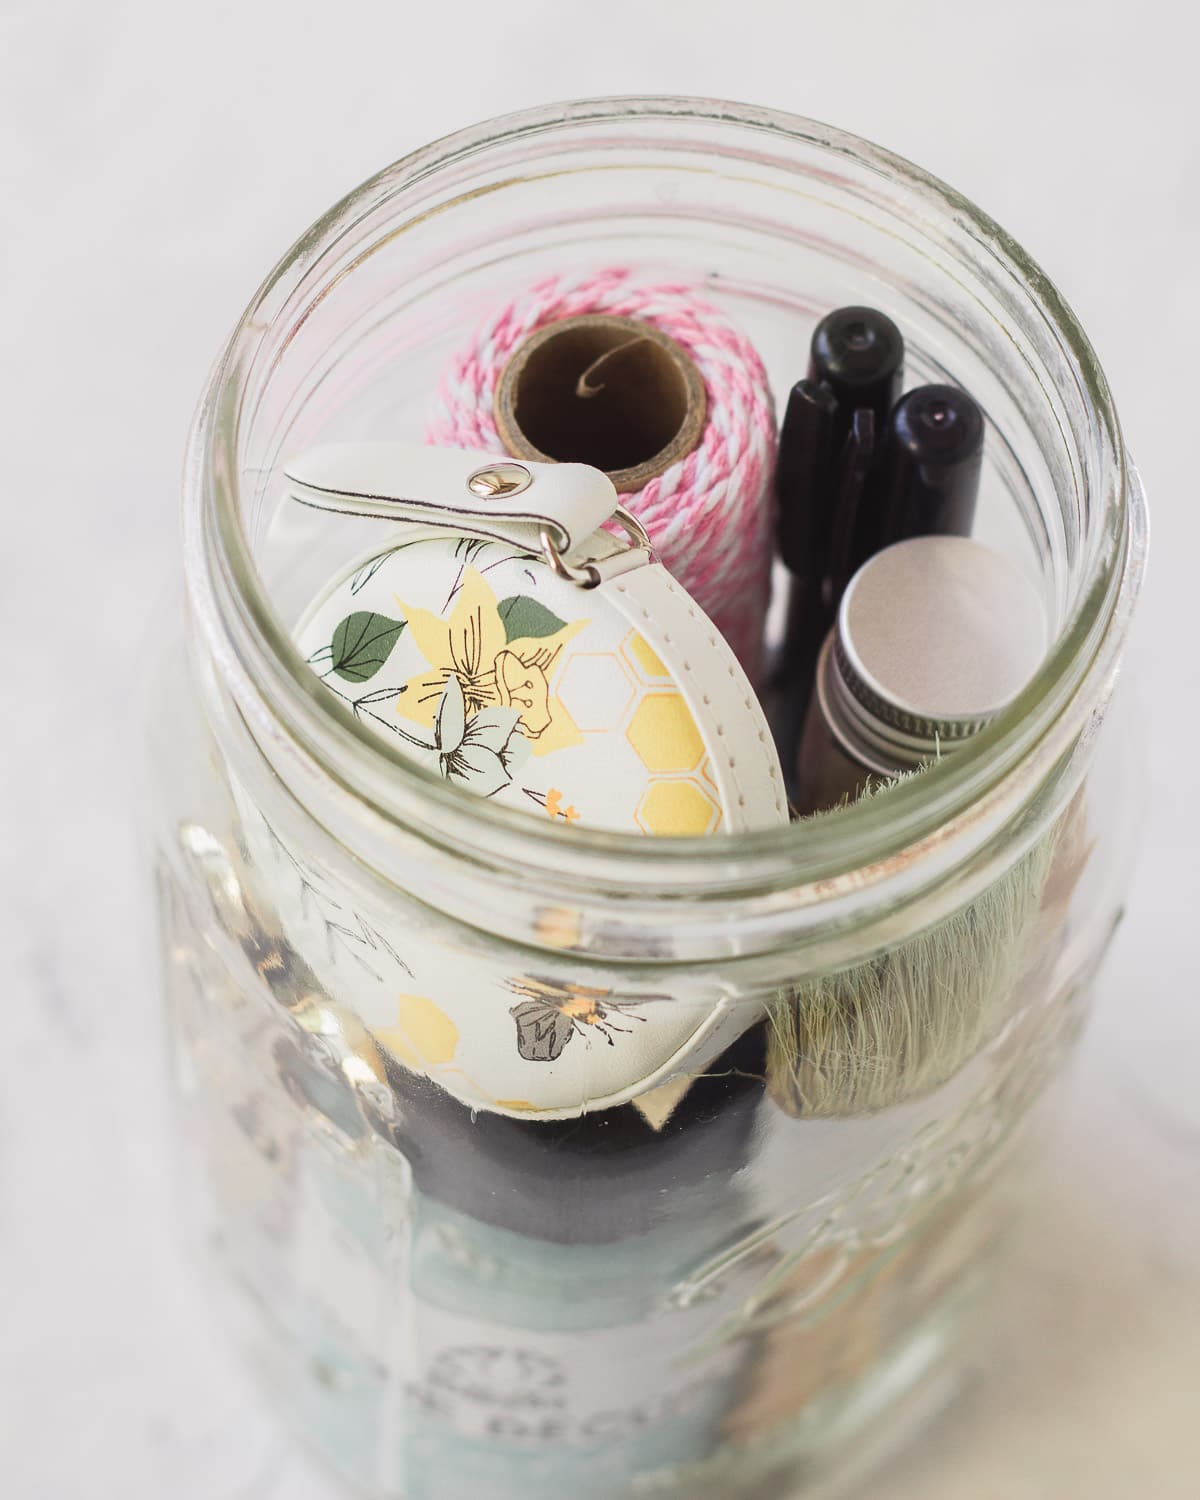 A tape measure and craft supplies packed into a mason jar.